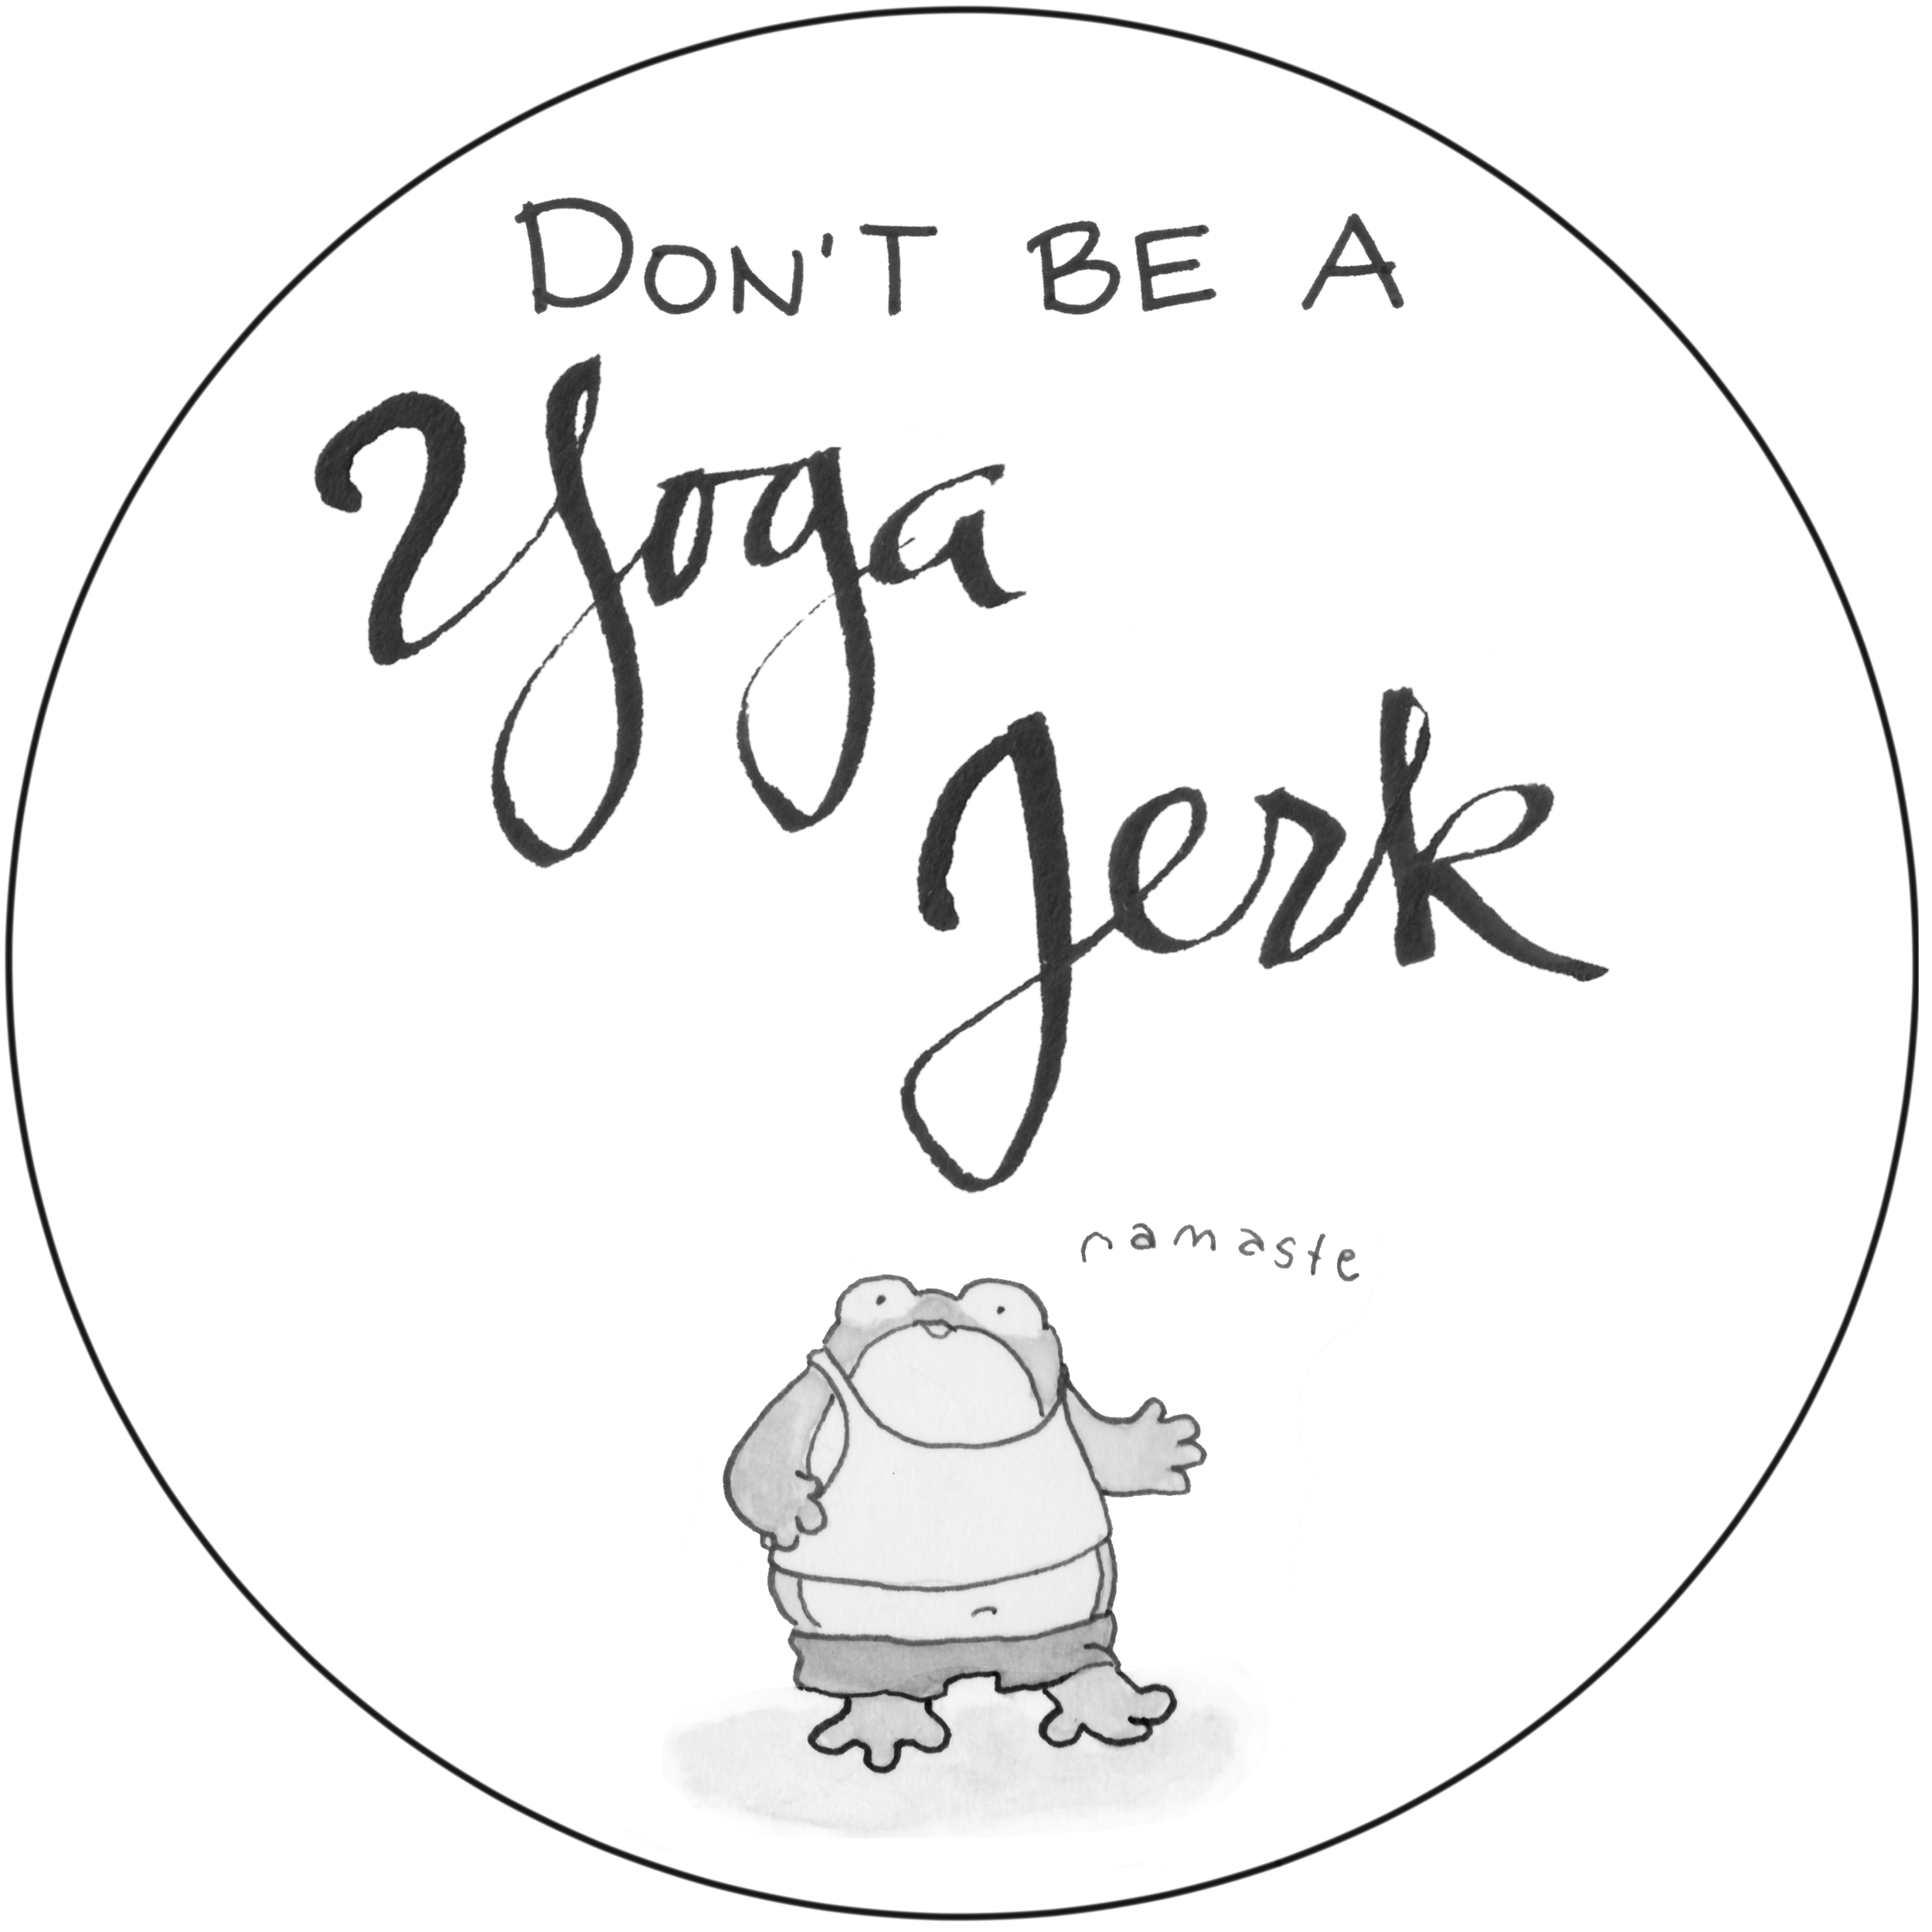 New Yoga Jerk Button 2.png